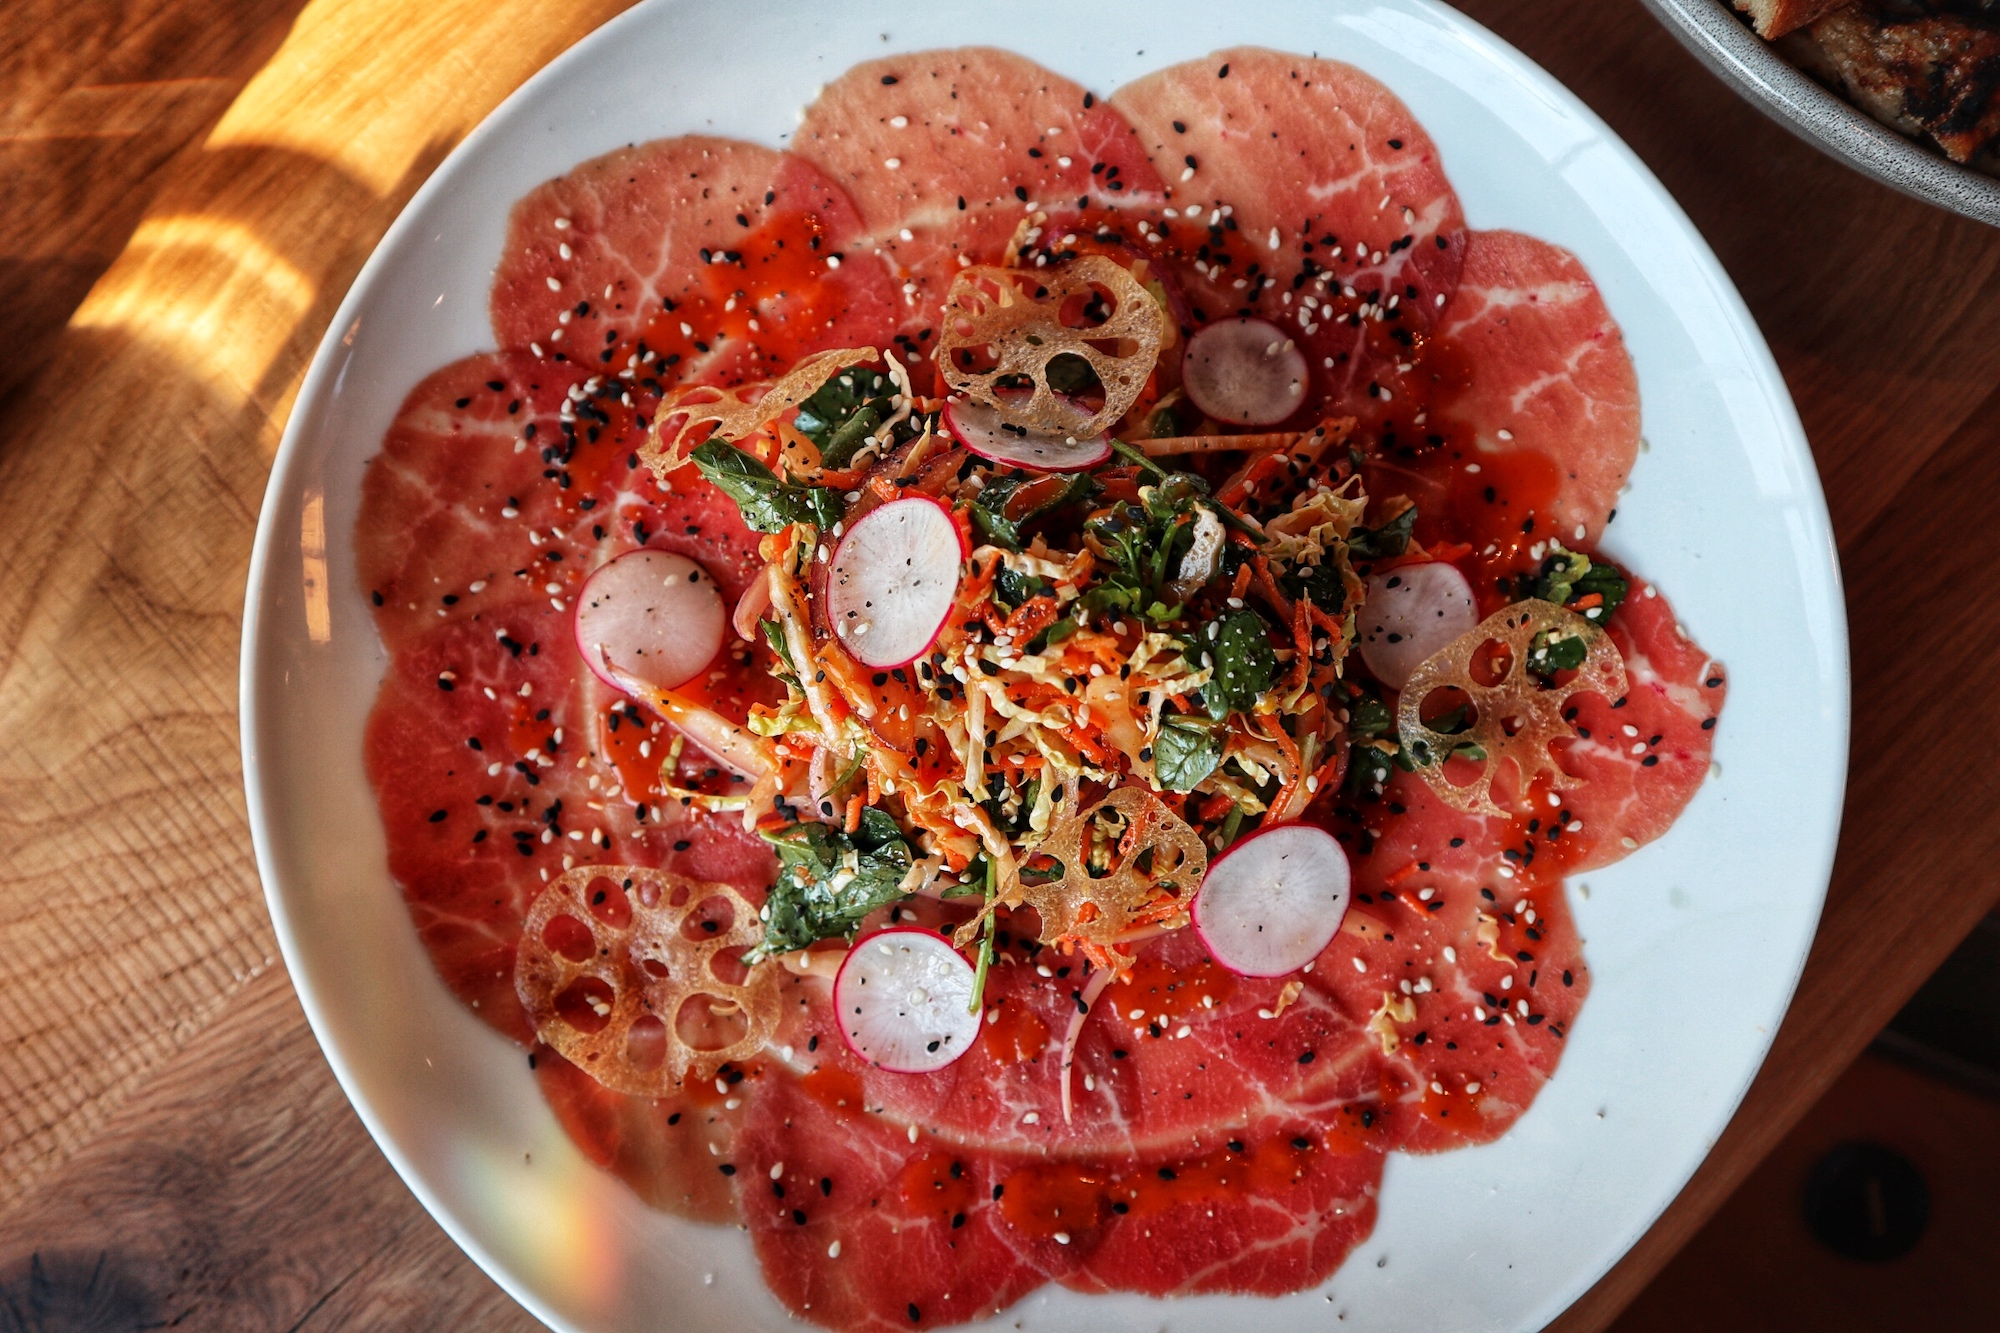 Carpaccio: shaved eye of round, watercress and cabbage slaw, radish, crispy lotus root, with a ponzu vinaigrette